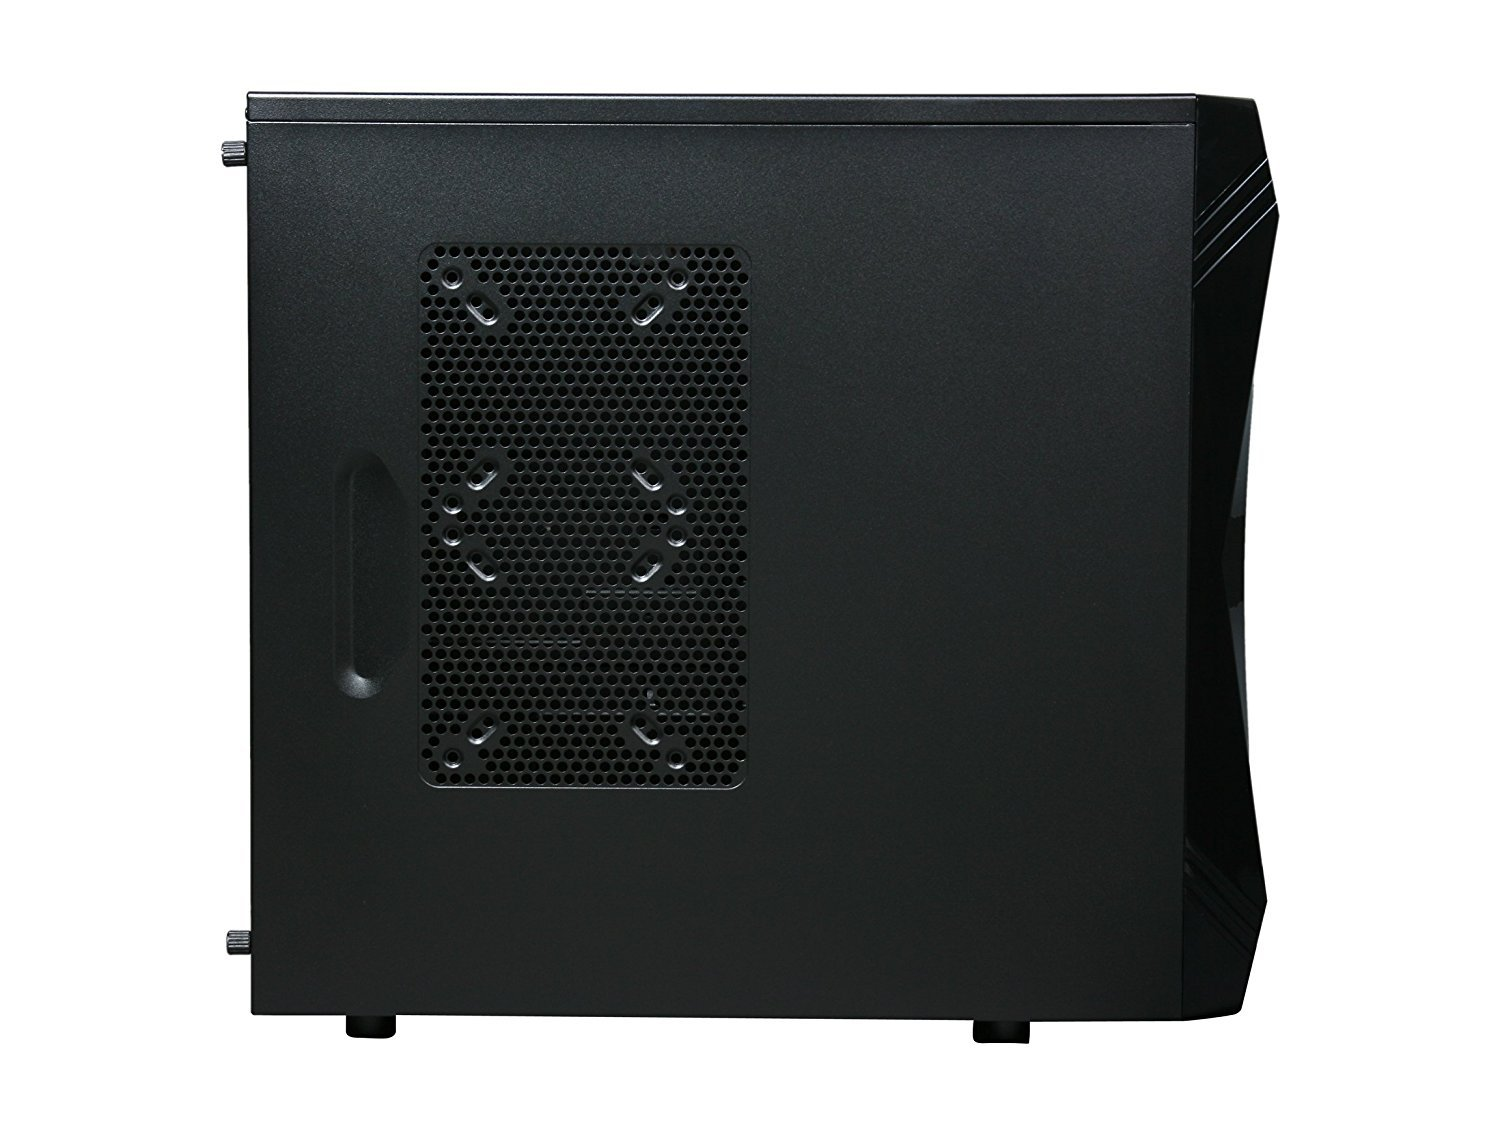 ROSEWILL ATX Mid Tower Gaming Computer Case, Gaming Case with Blue LED for Desktop / PC and 3 Case Fans Pre-Installed, Front I/O Access Ports  (CHALLENGER) by Rosewill (Image #4)